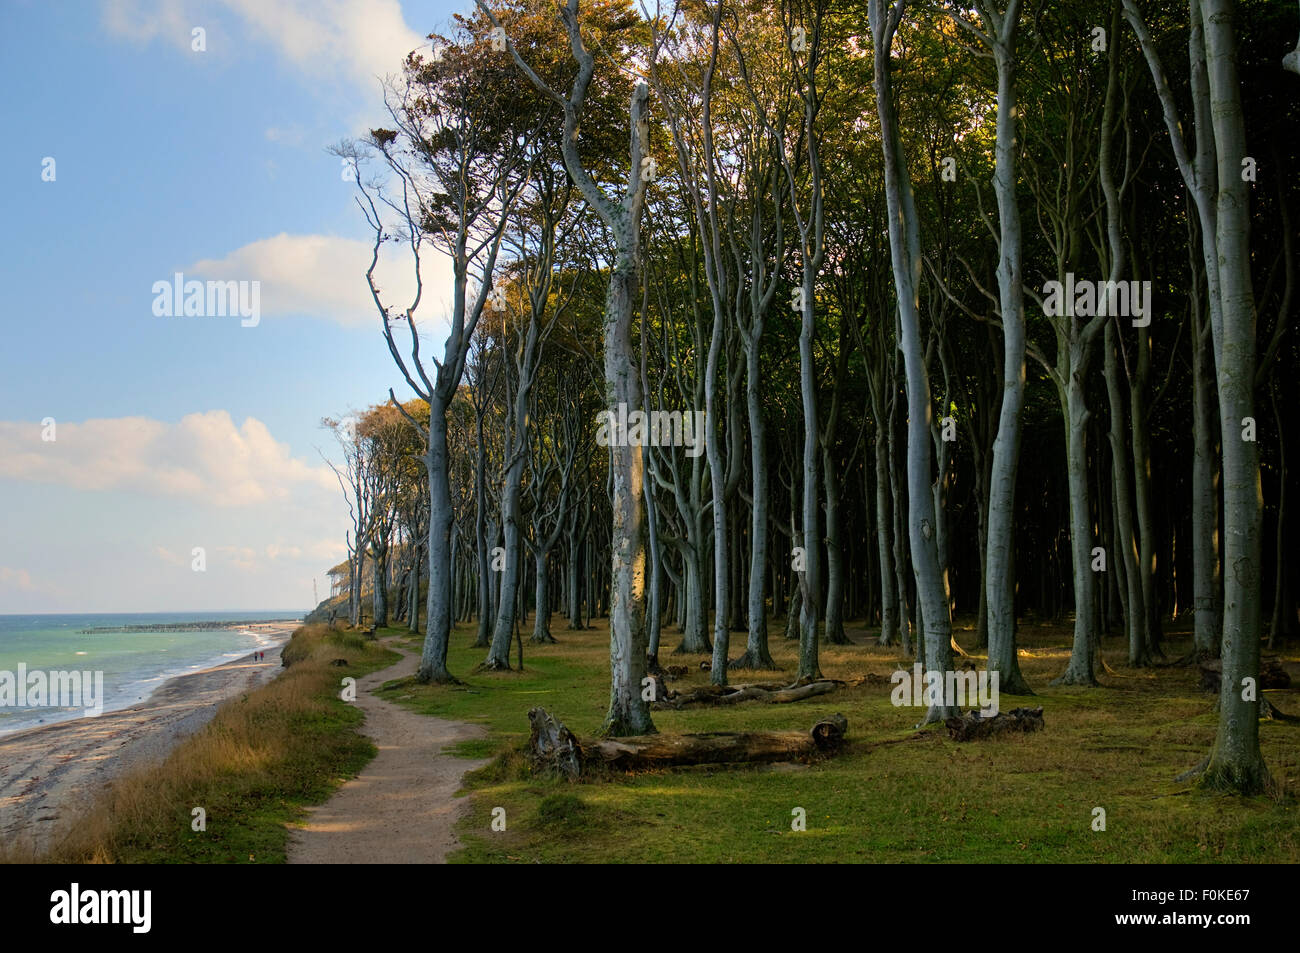 Beech forest, mind wood, ghost wood, at the baltic sea at nienhagen, Mecklenburg-Western Pomerania, germany, europe - Stock Image